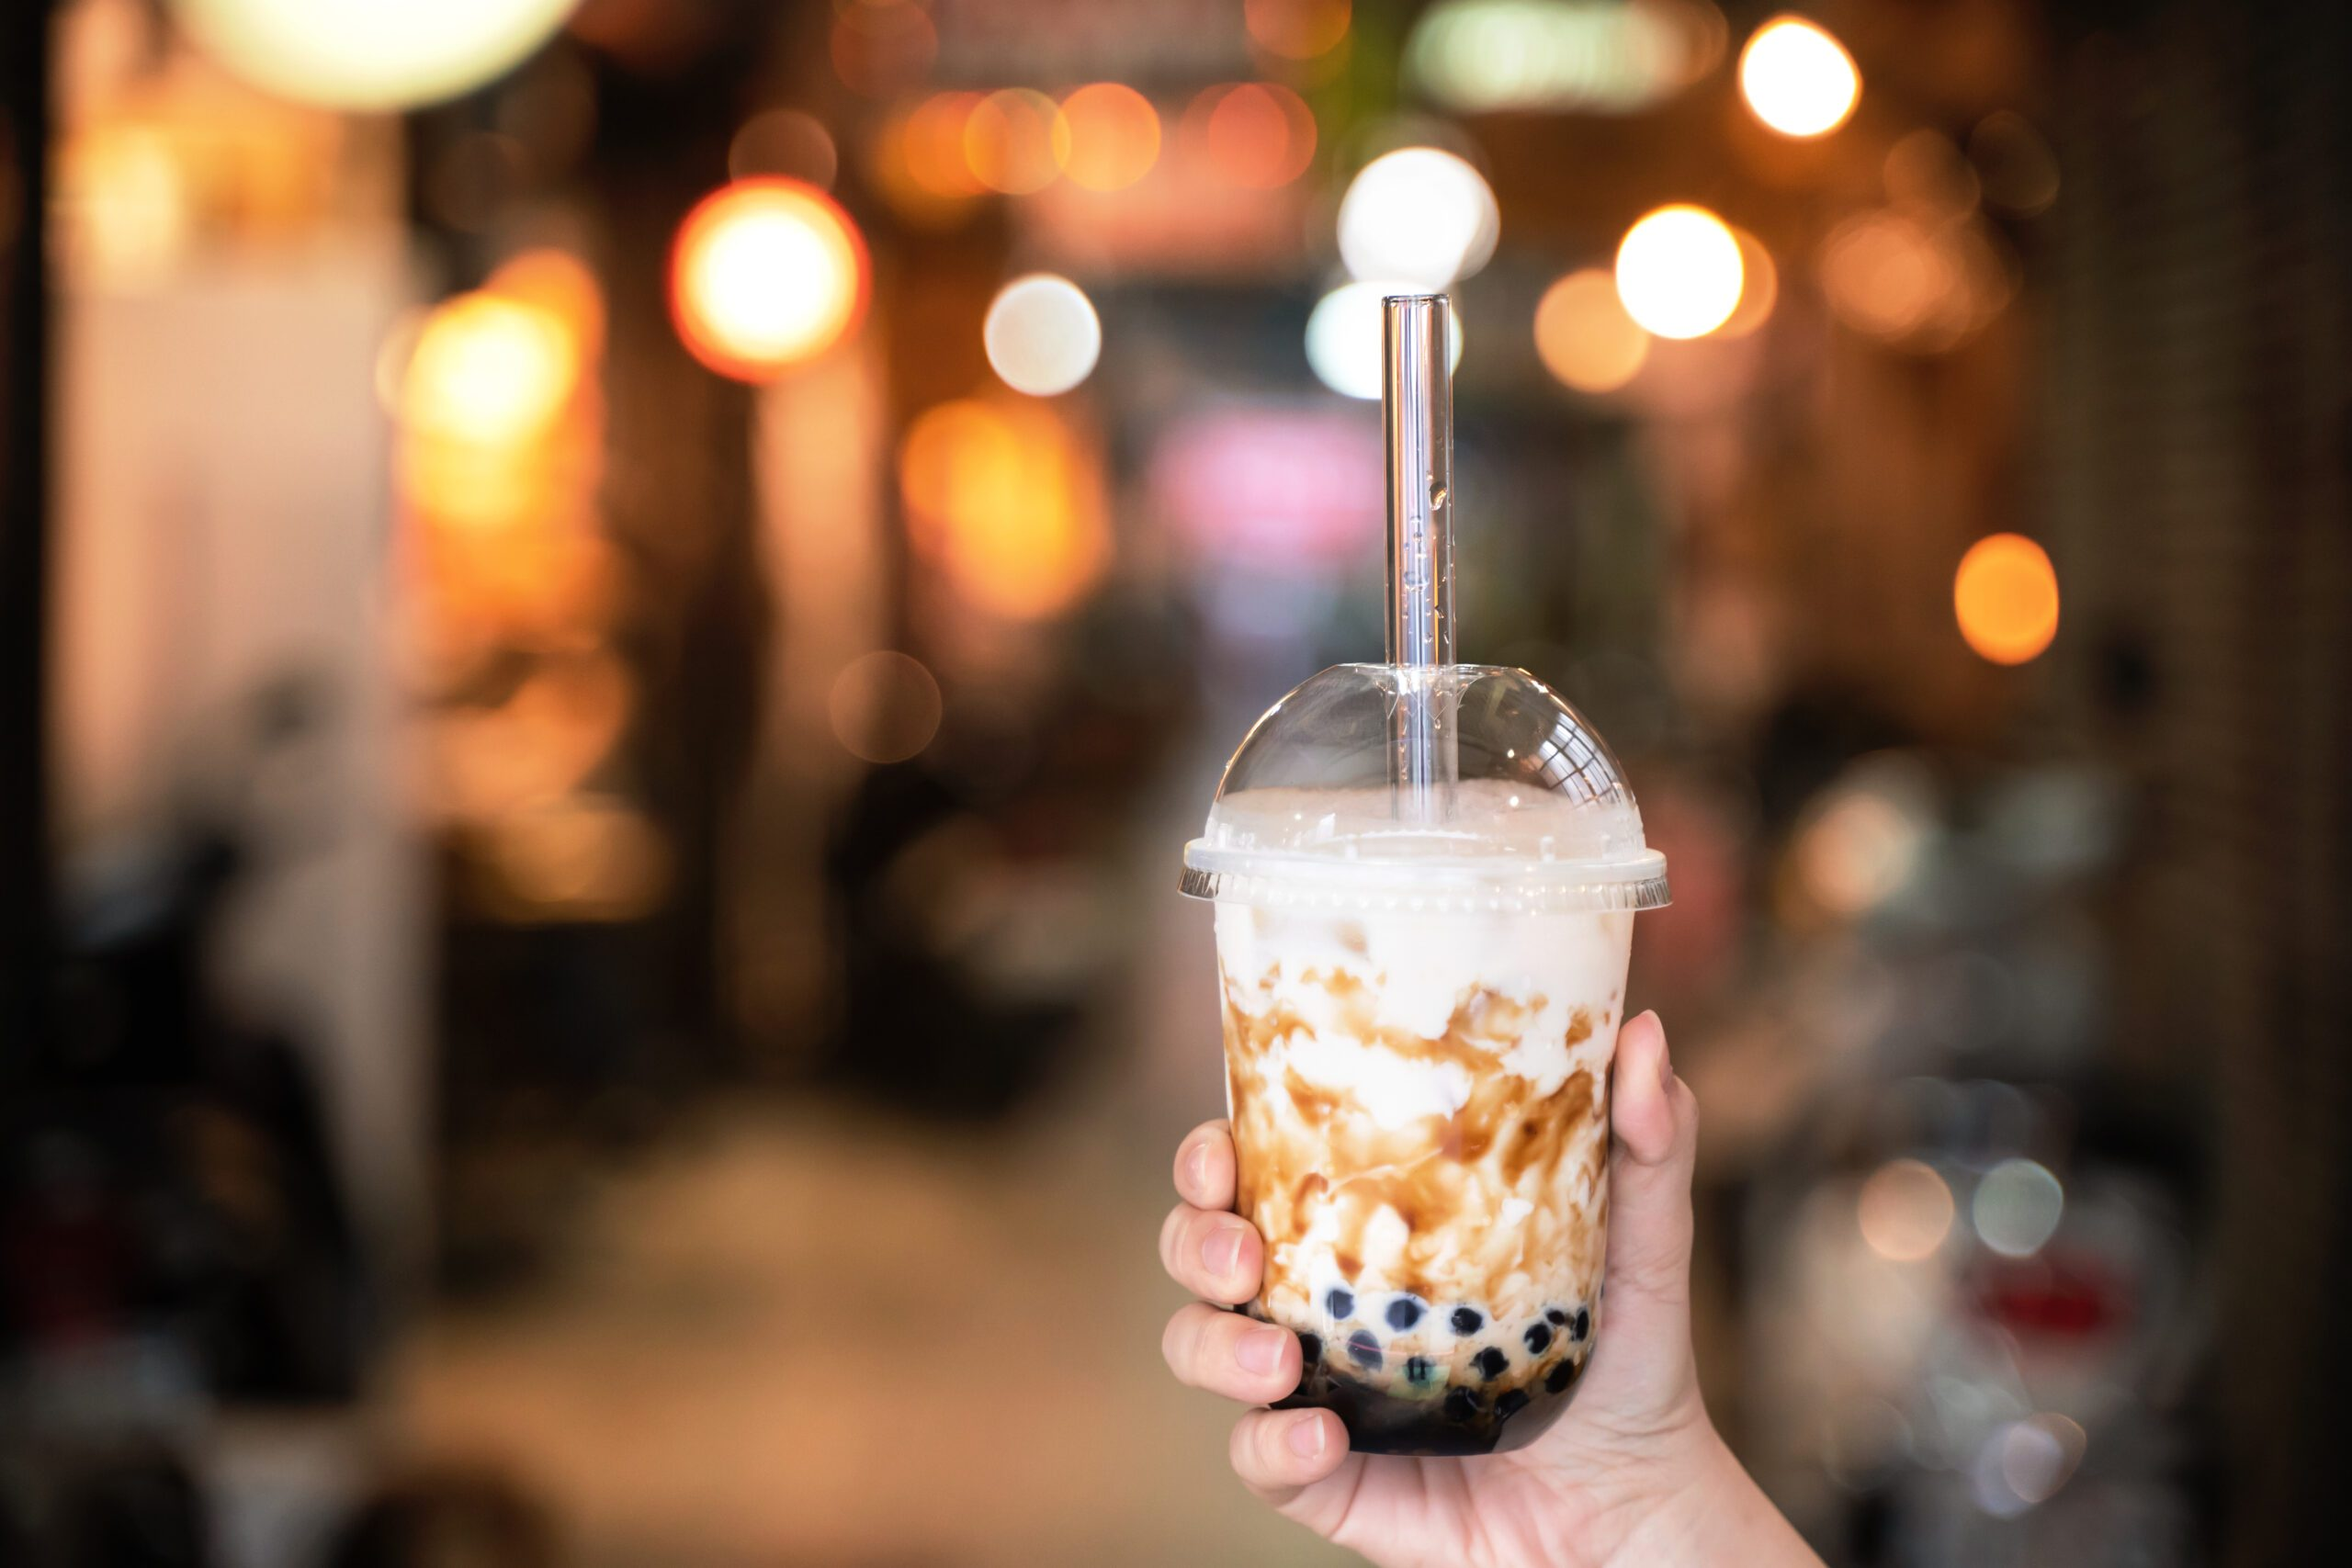 Brown sugar flavored bubble tea with a glass straw